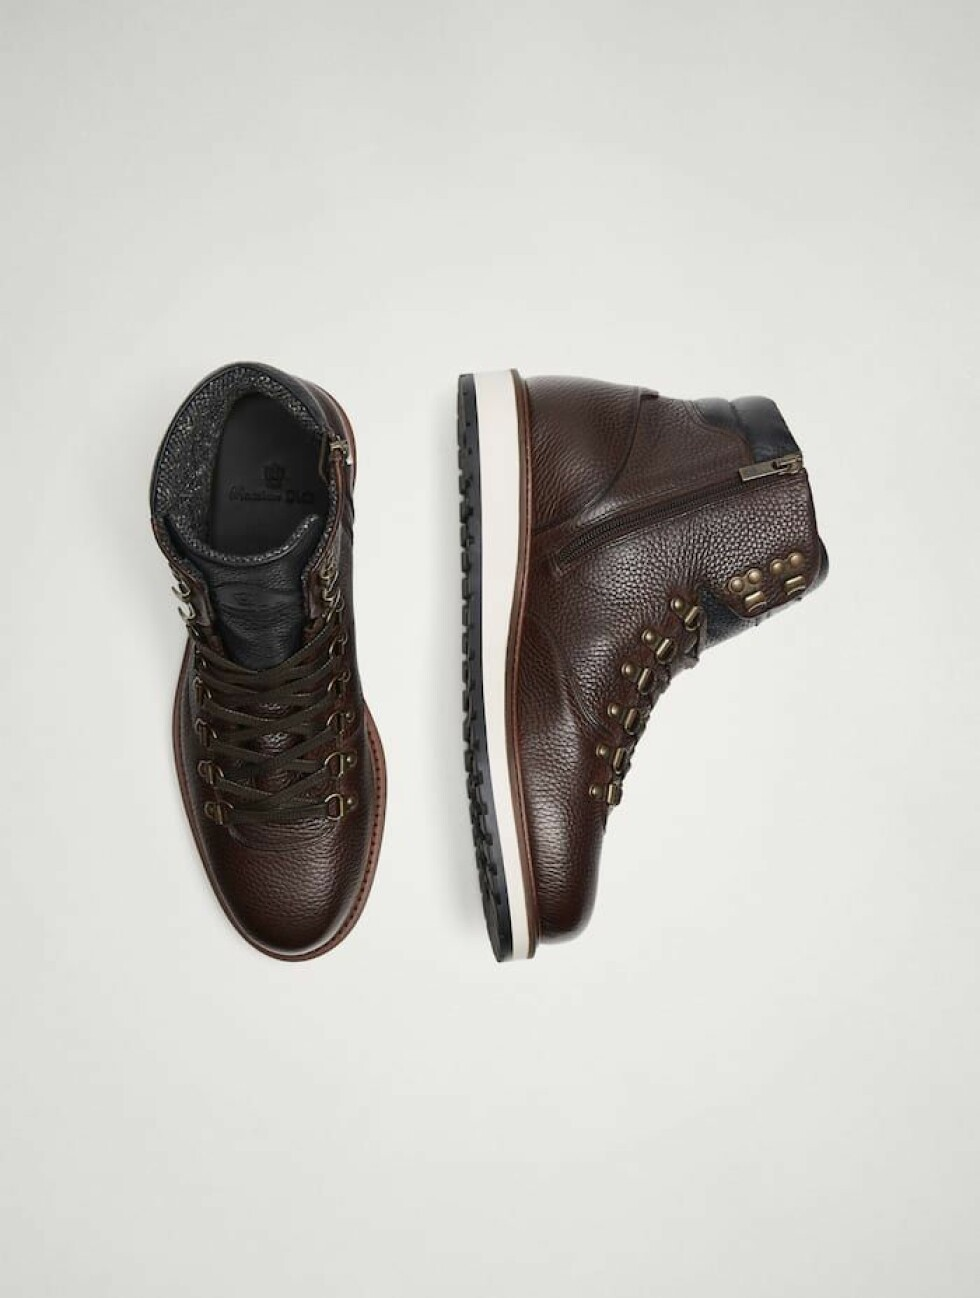 Sko fra Massimo Dutti |1700,-| https://www.massimodutti.com/no/men/collection/new-in/brown-leather-boots-with-hooks-c1607006p8450045.html?colorId=700